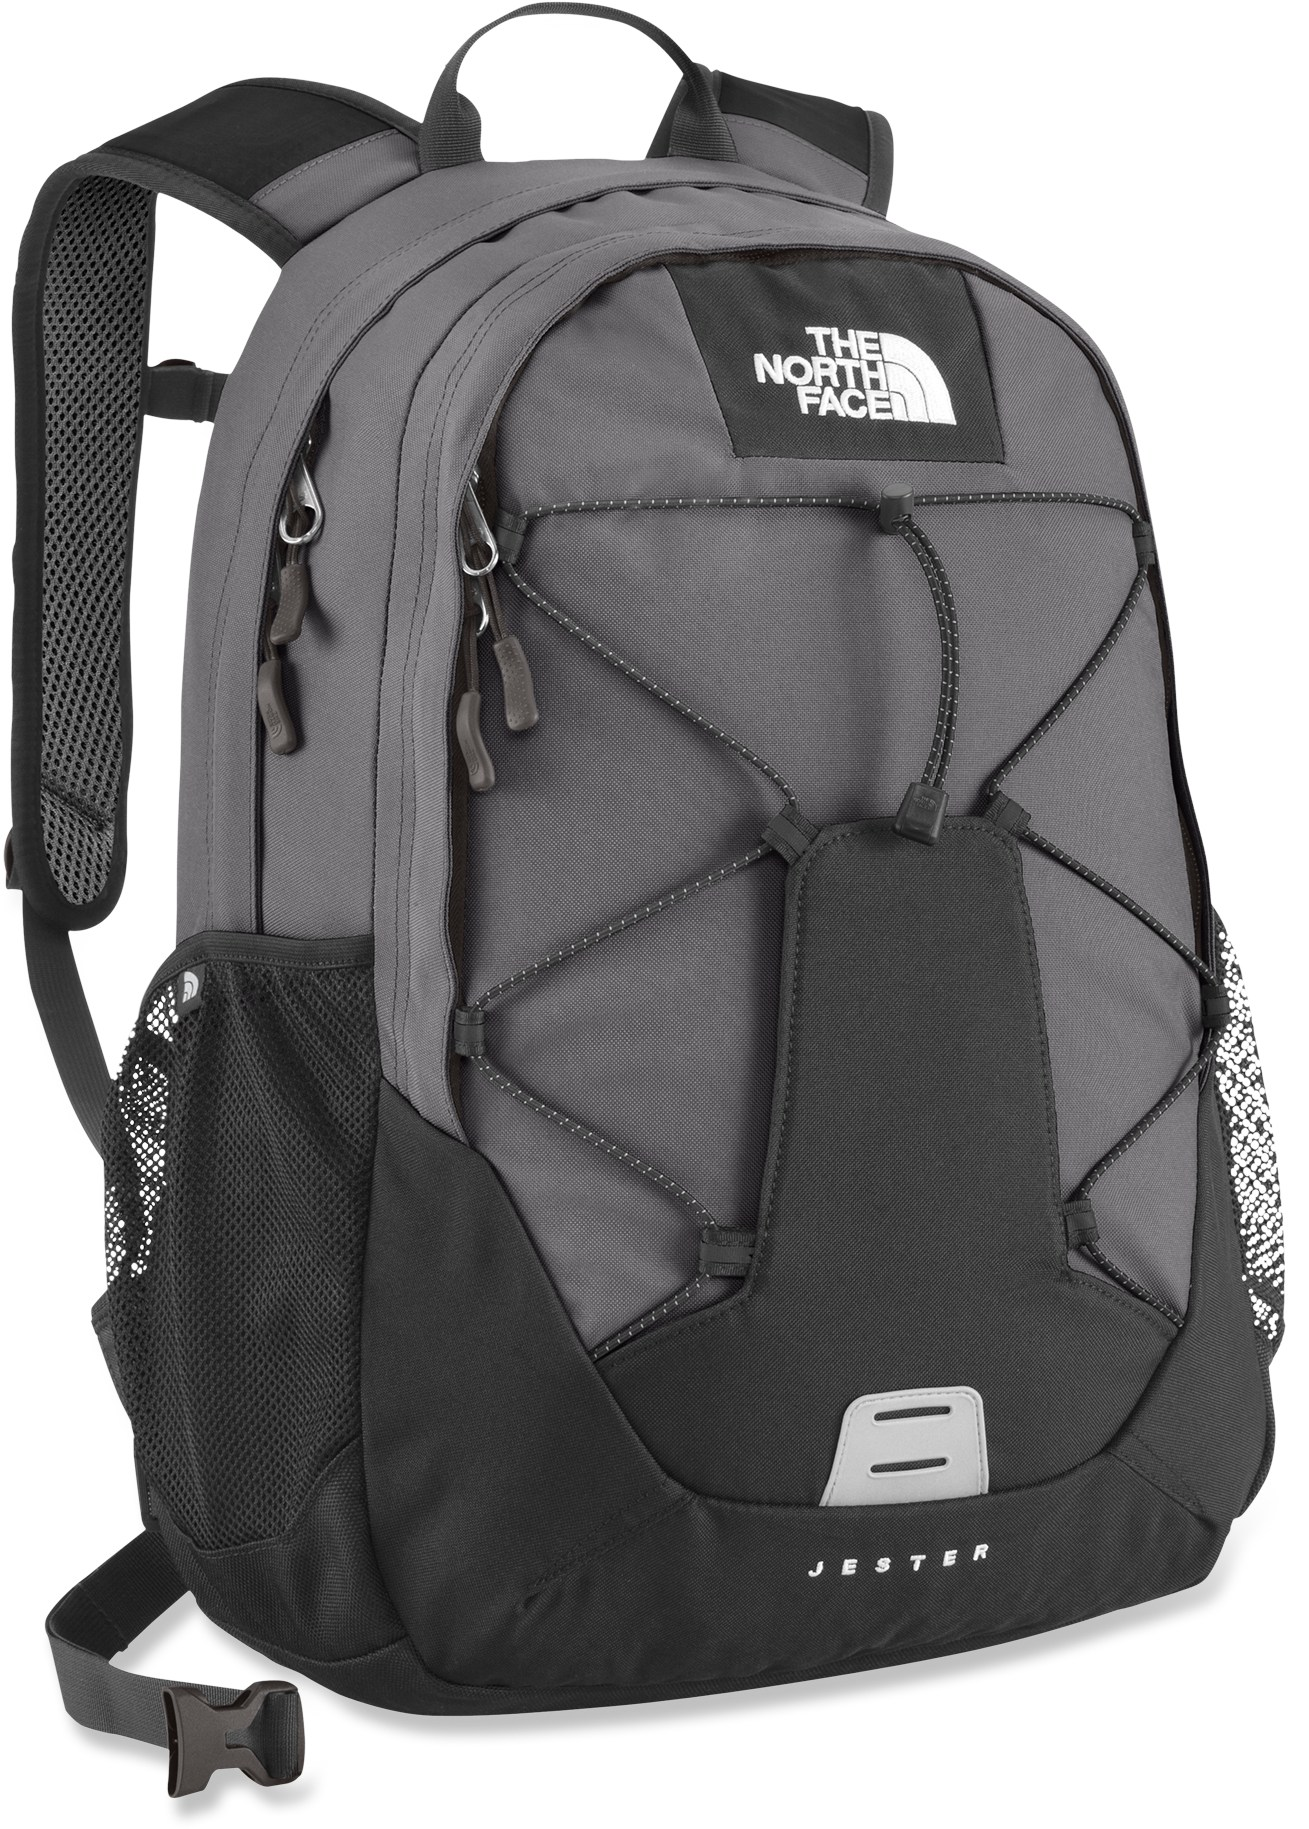 Good Backpacks For High School Kpag0gdD